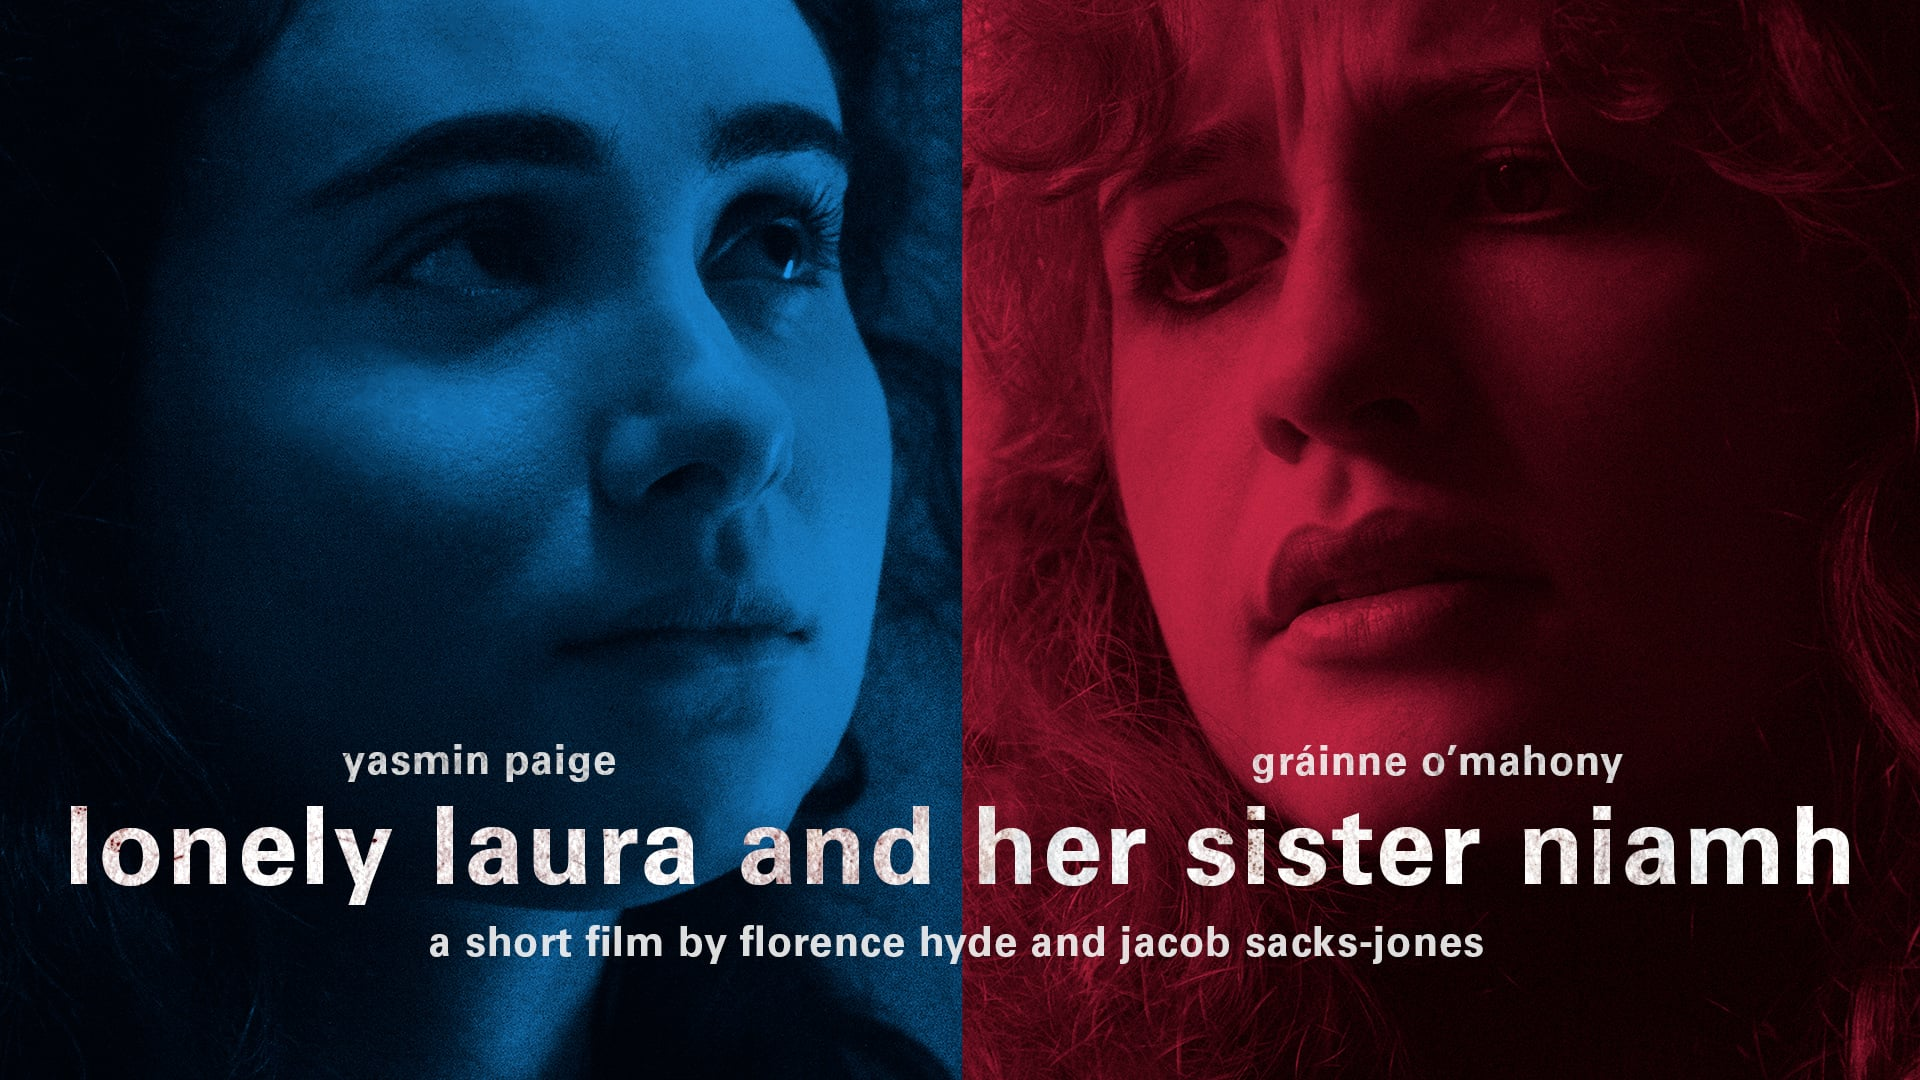 Lonely Laura and Sister Niamh - drama, thriller - trailer (dir. Florence Hyde)